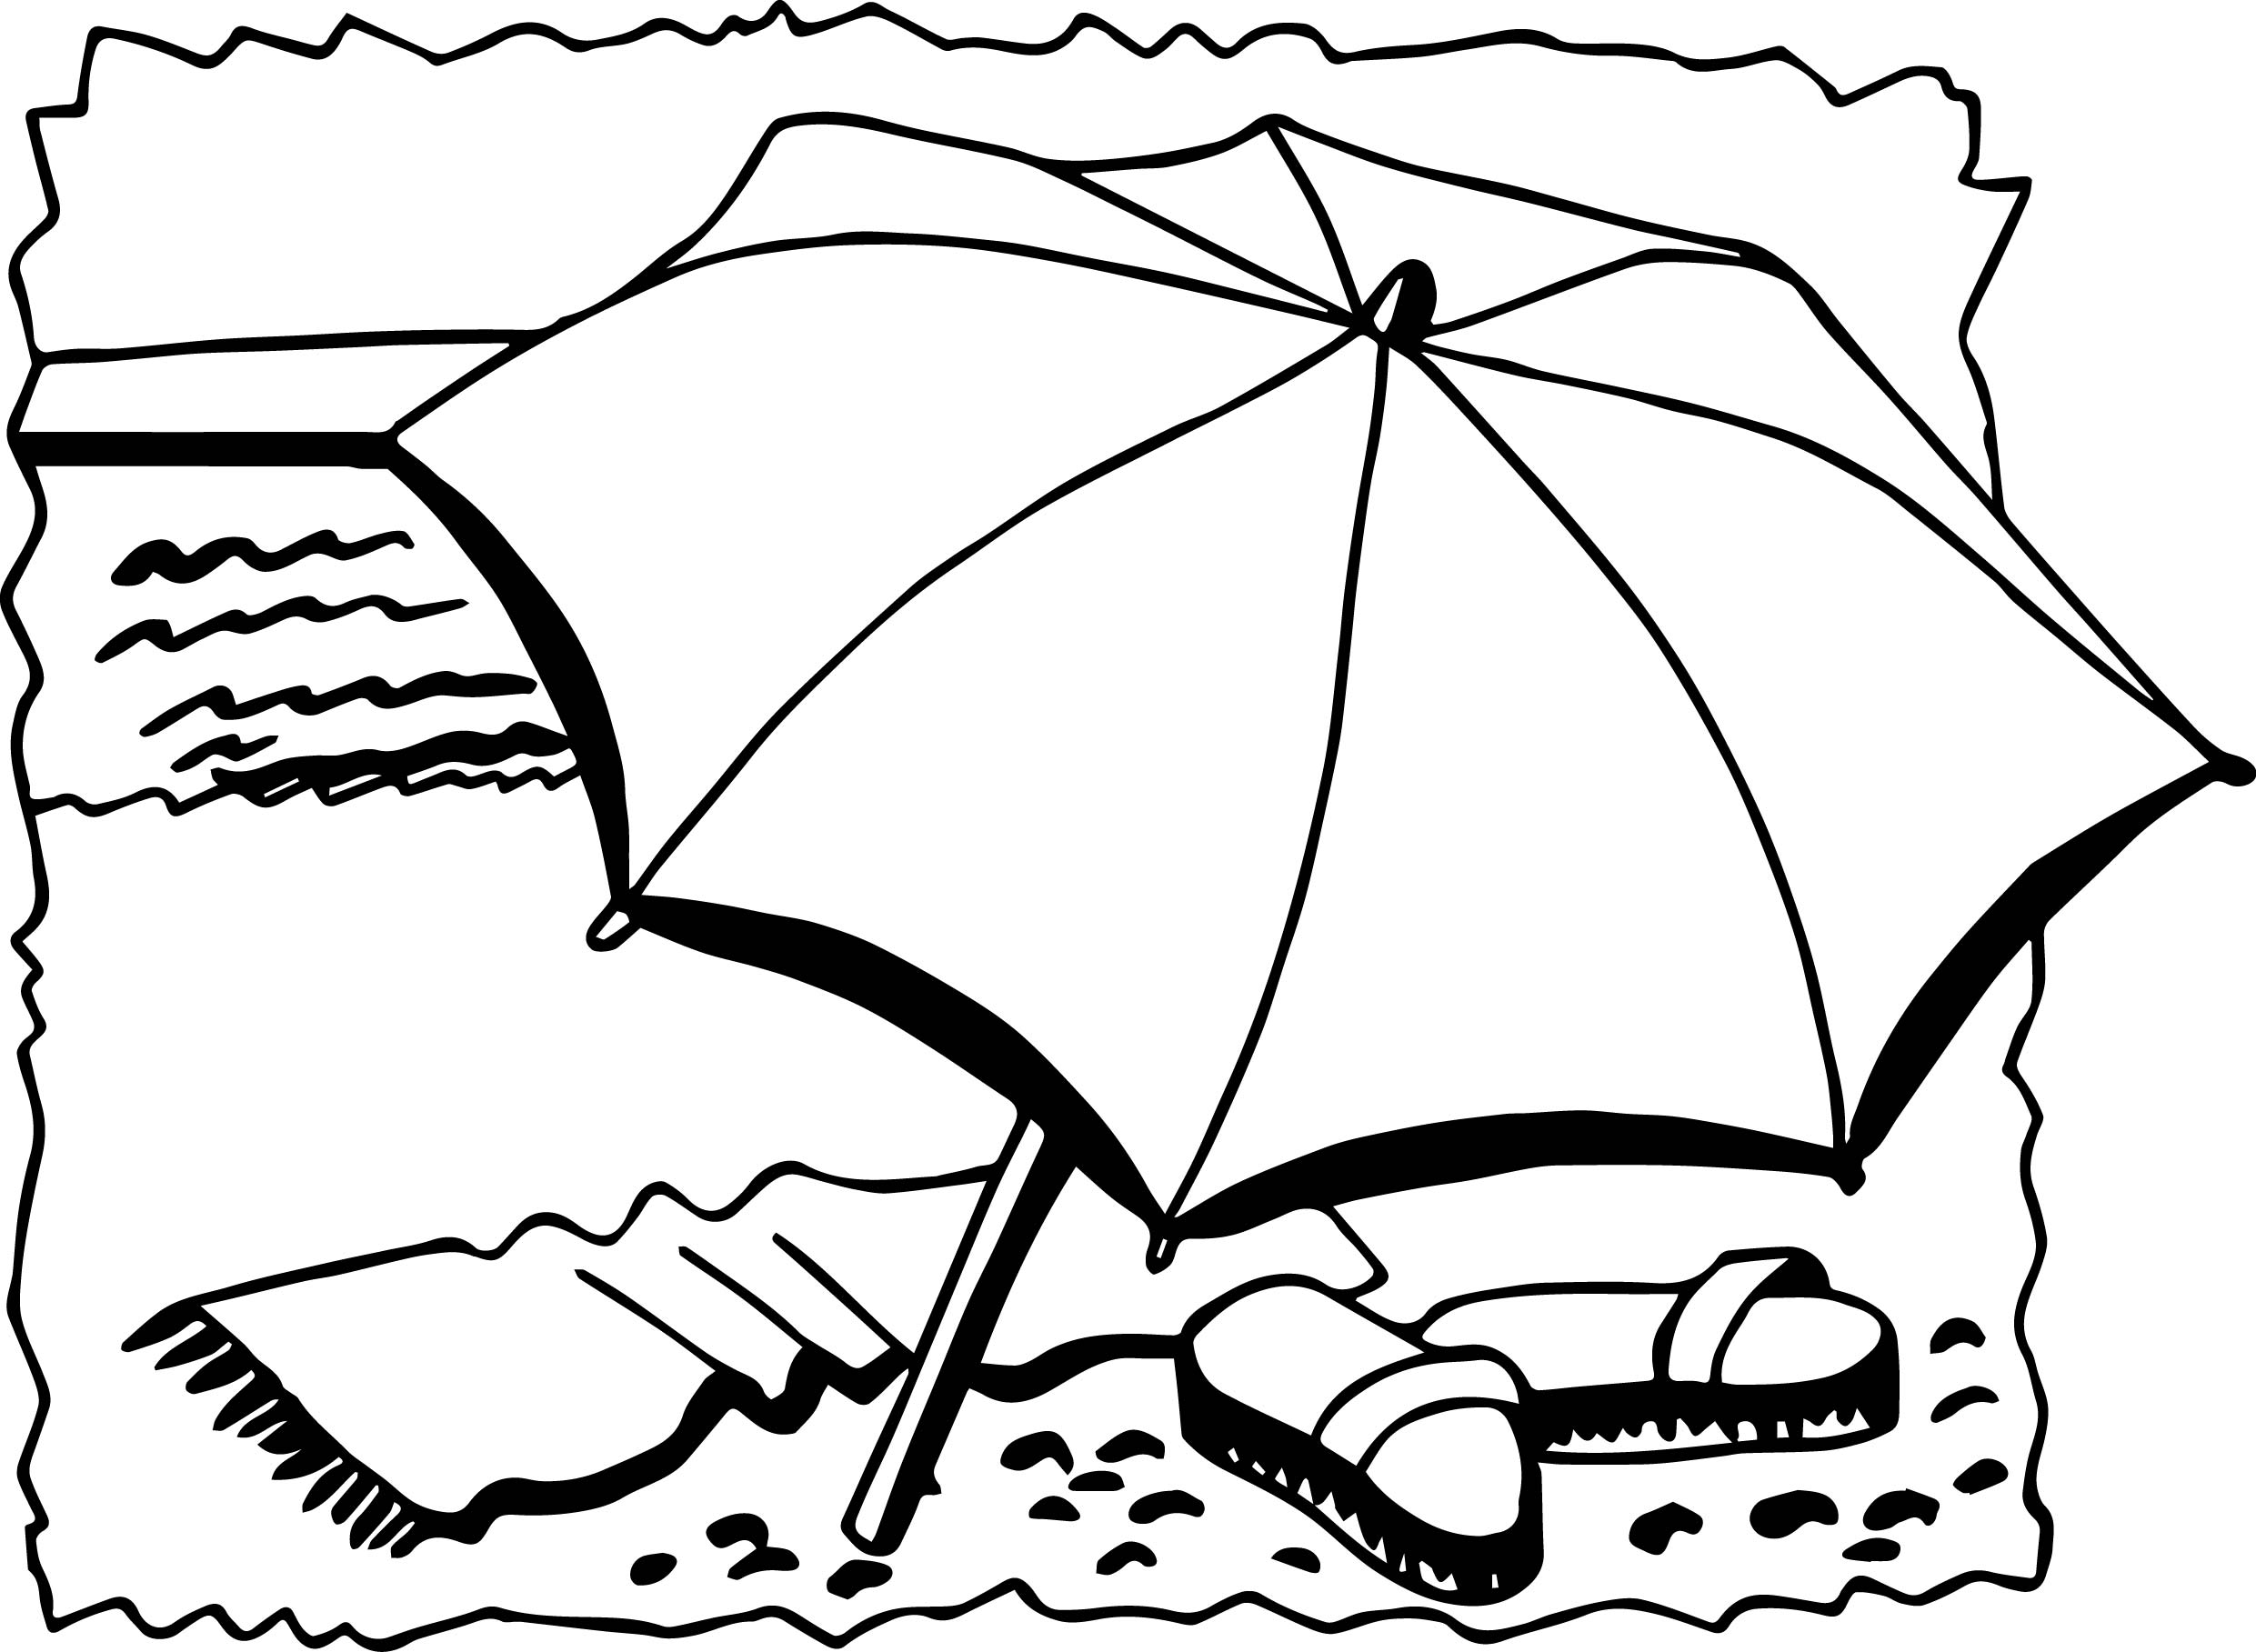 Summer umbrella slipper coloring page for Umbrella coloring pages